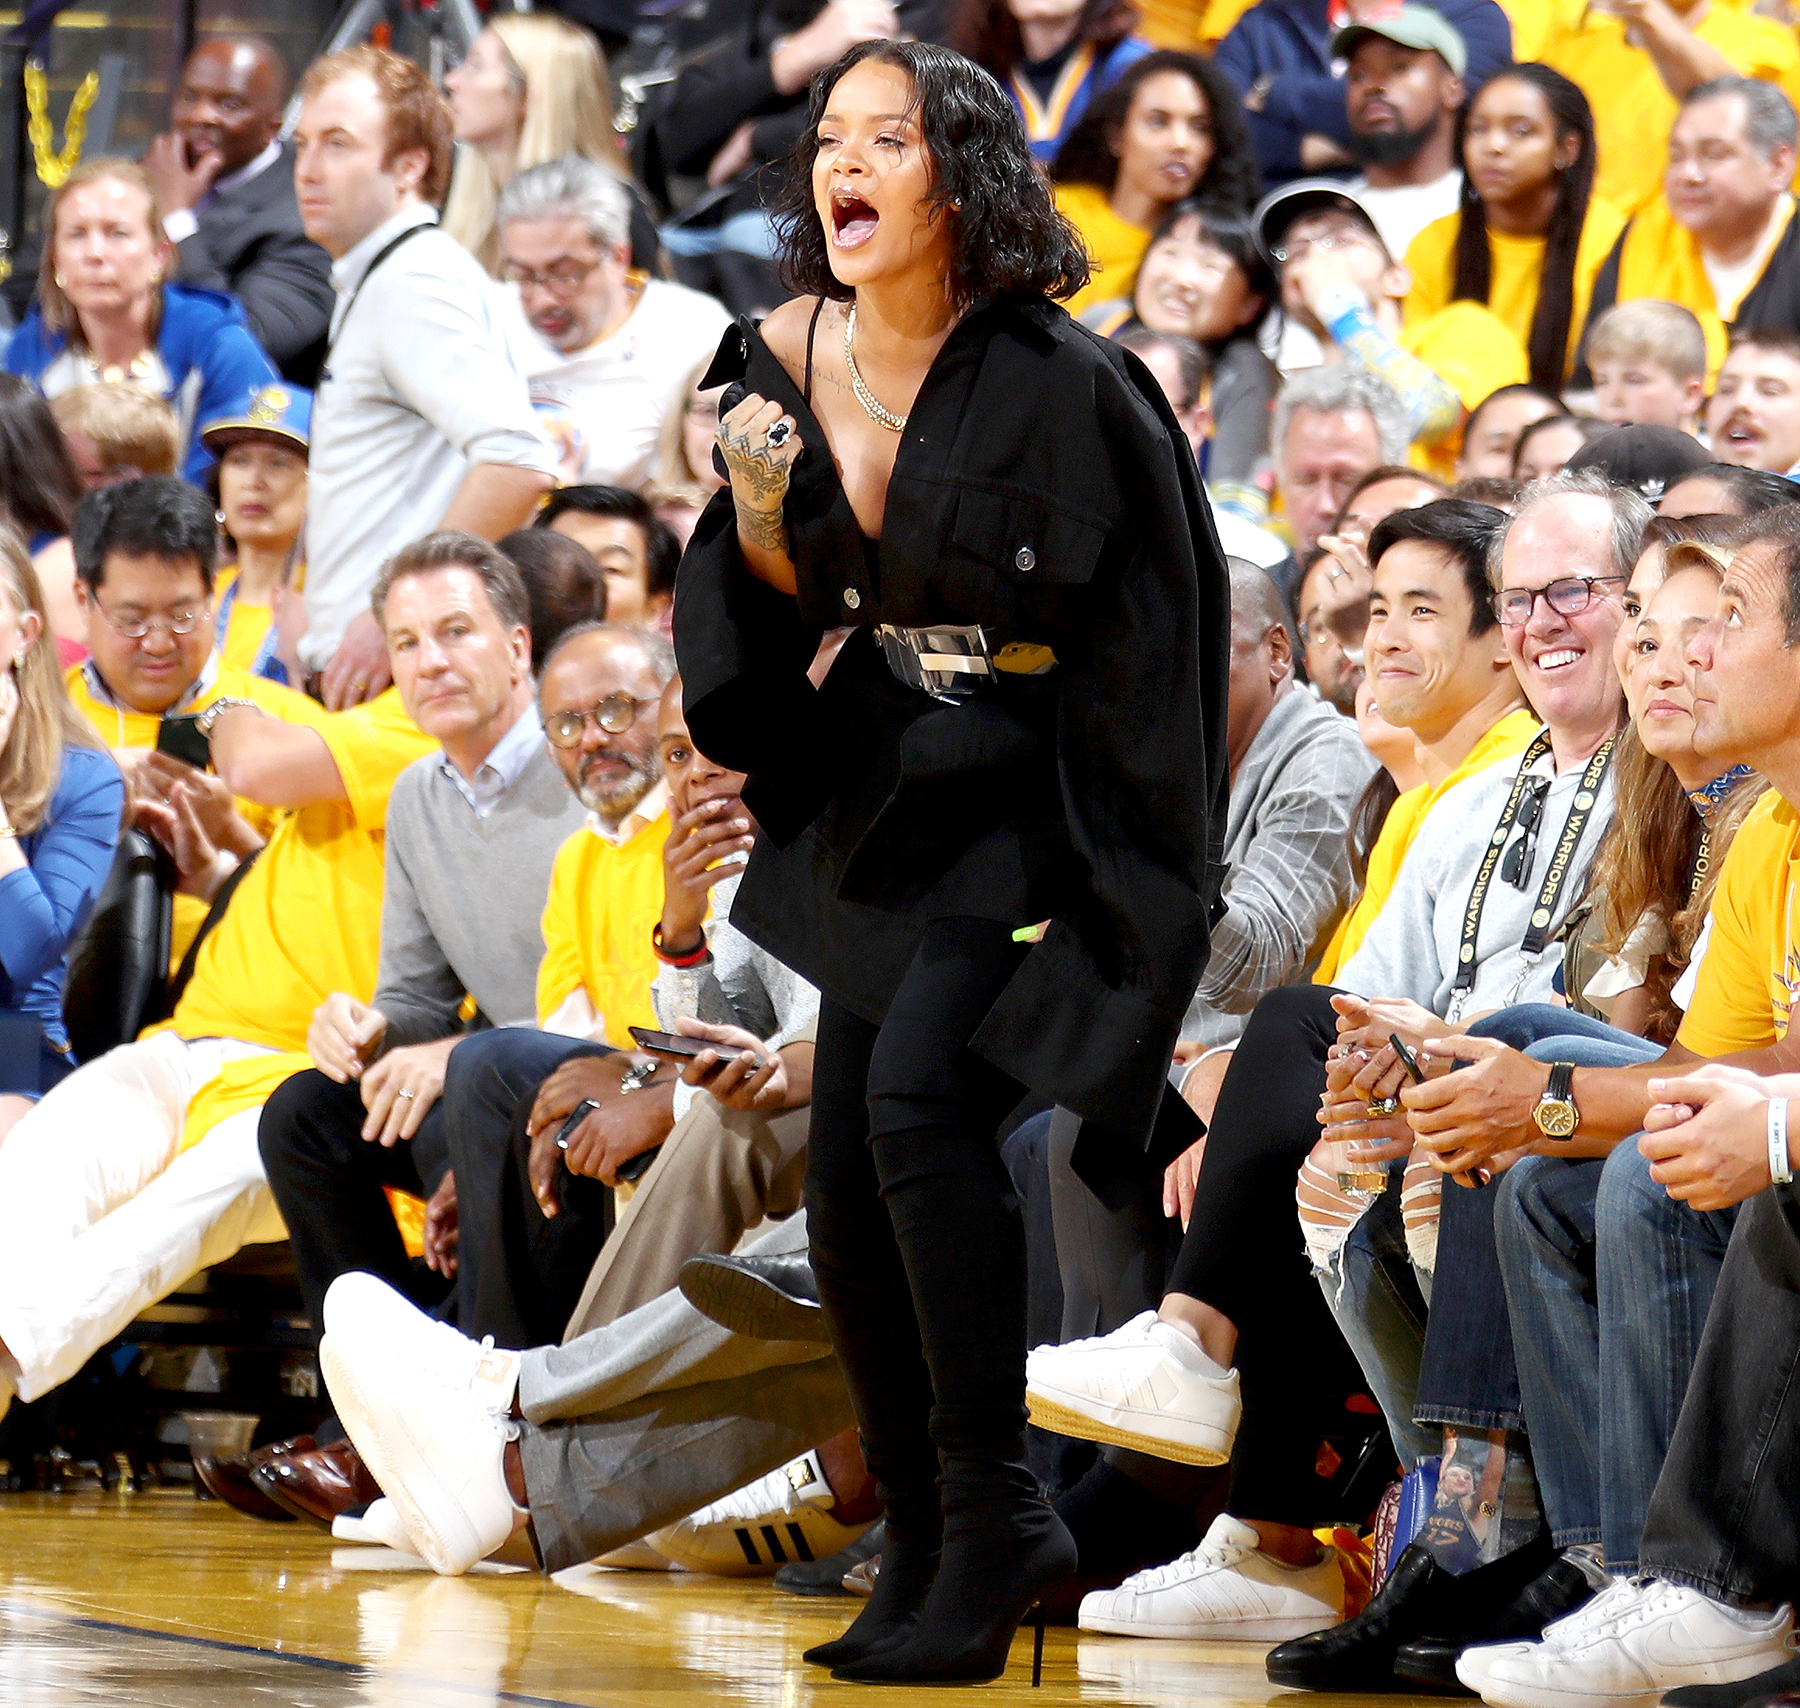 Rihanna cheers from the side line during the game of the Golden State Warriors and the Cleveland Cavaliers in Game One of the 2017 NBA Finals on June 1, 2017 at ORACLE Arena in Oakland, California.